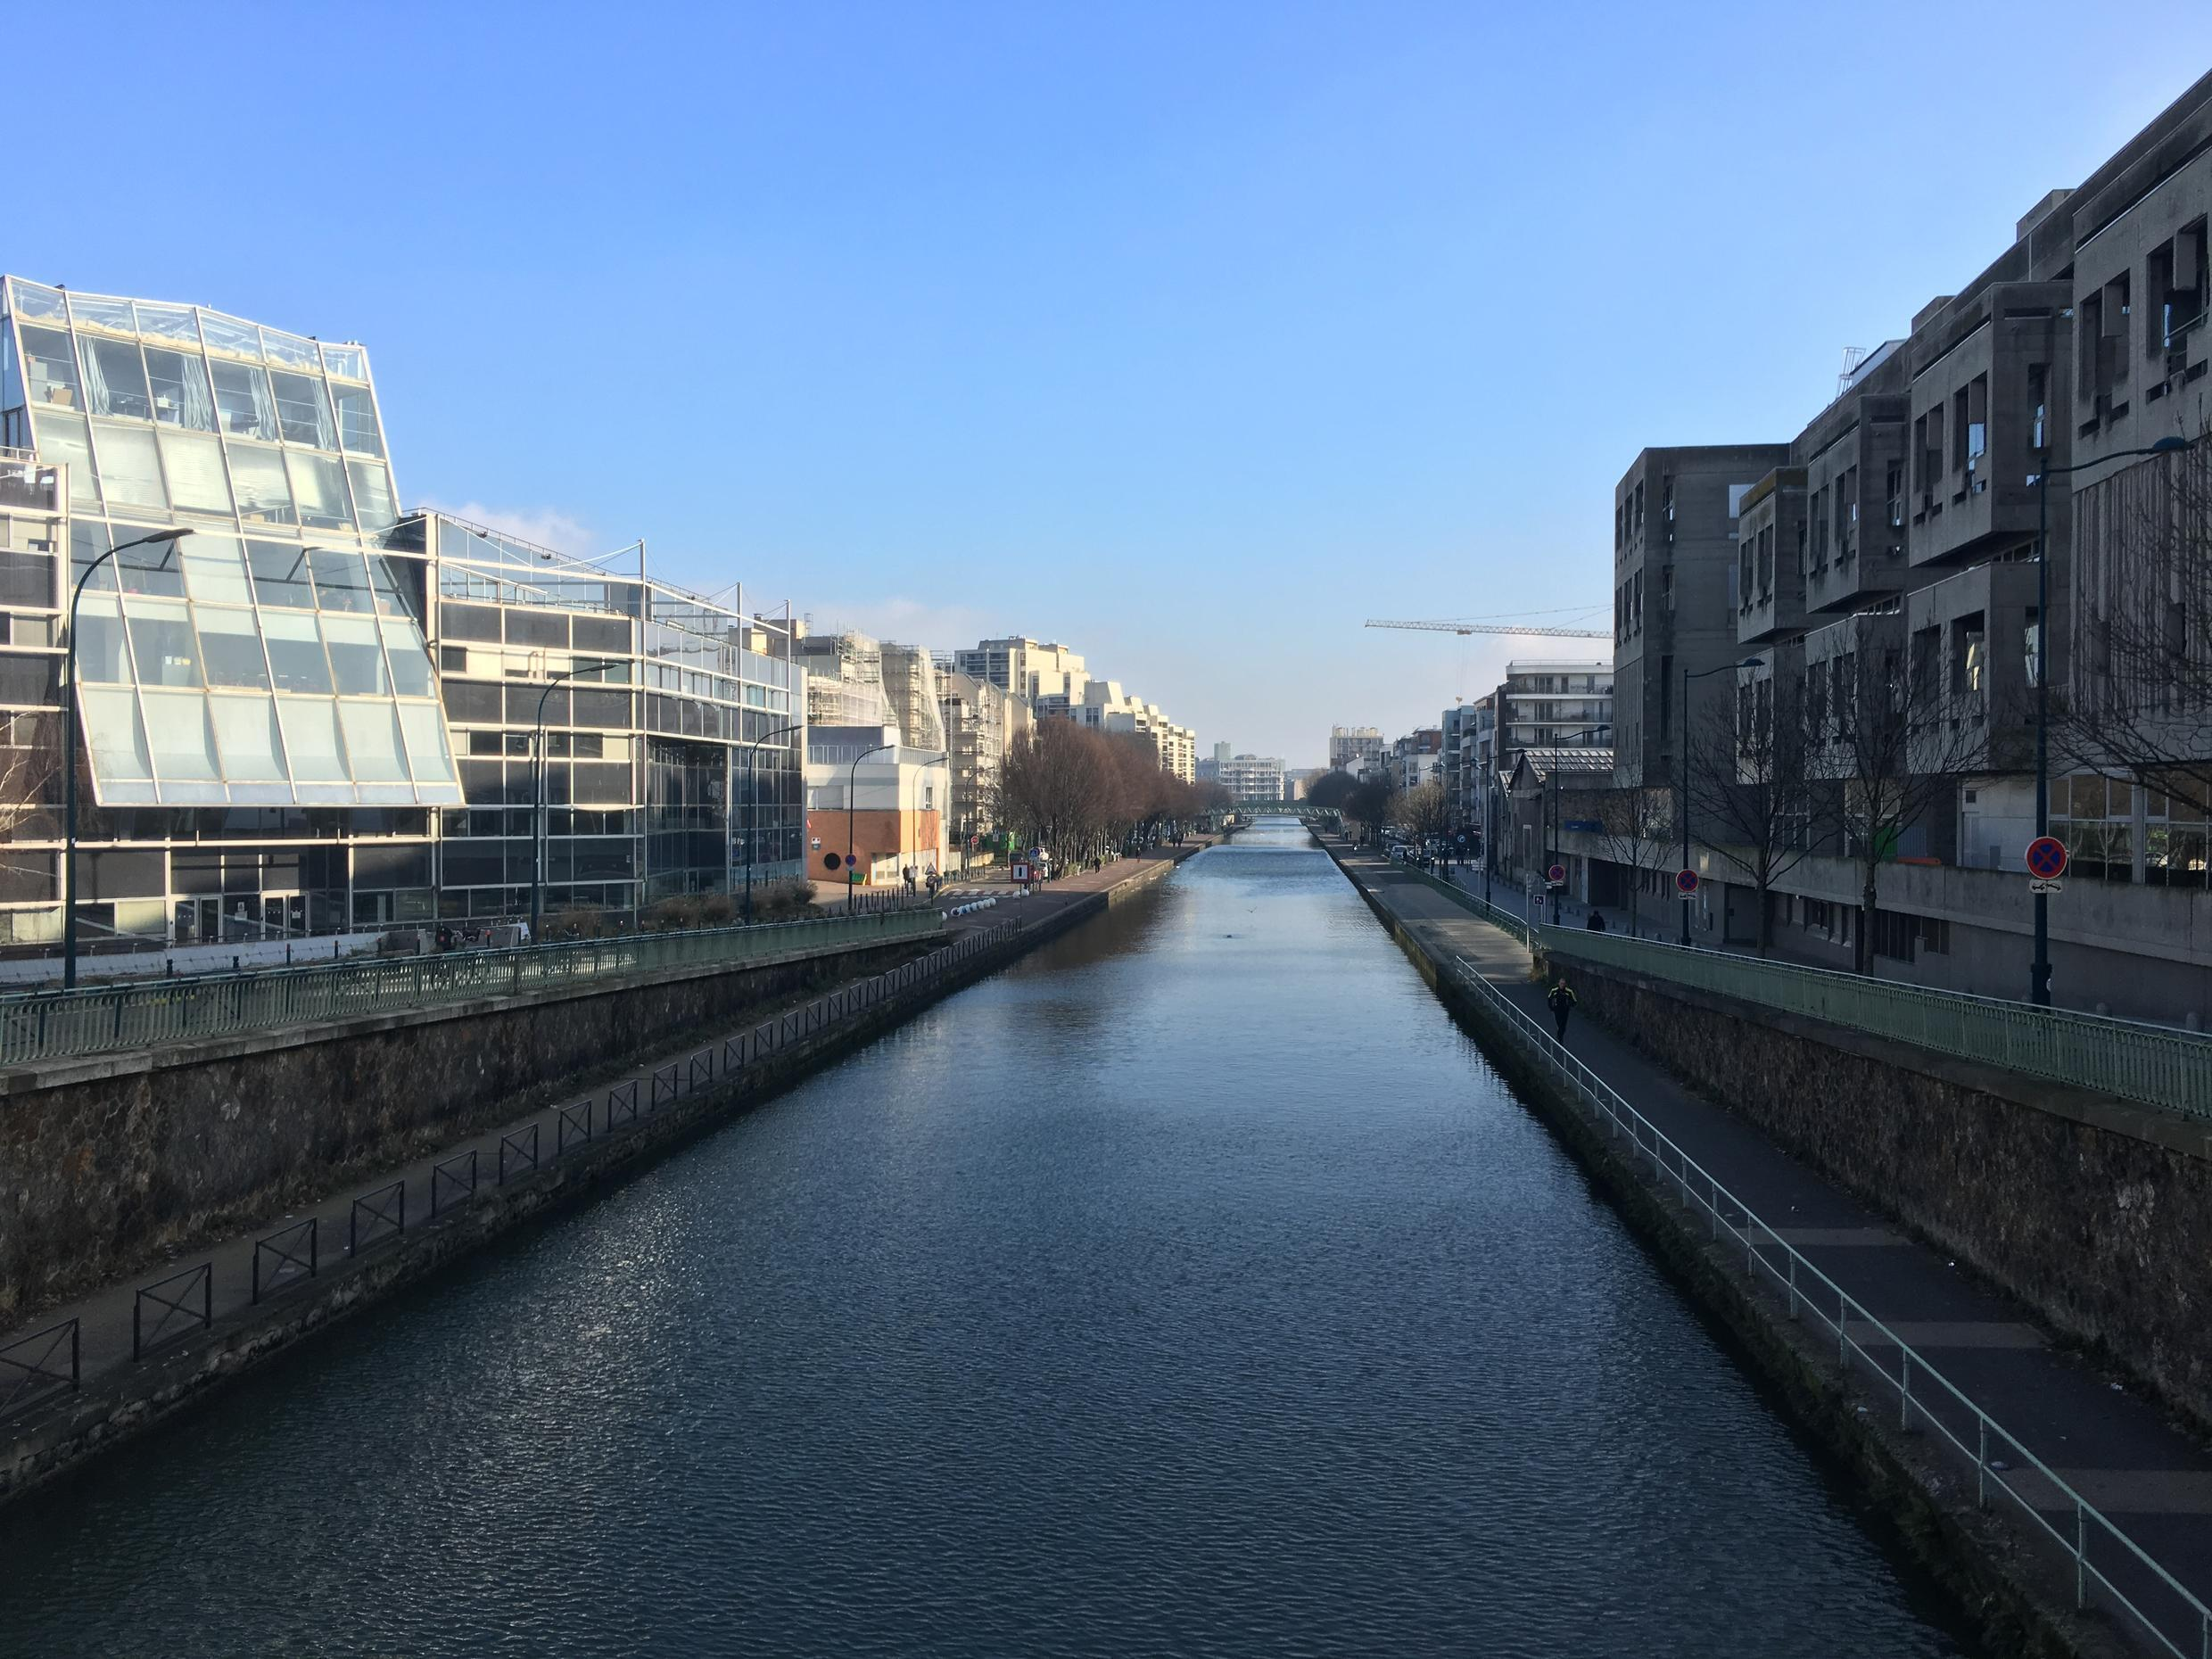 The Canal St Martin in Pantin